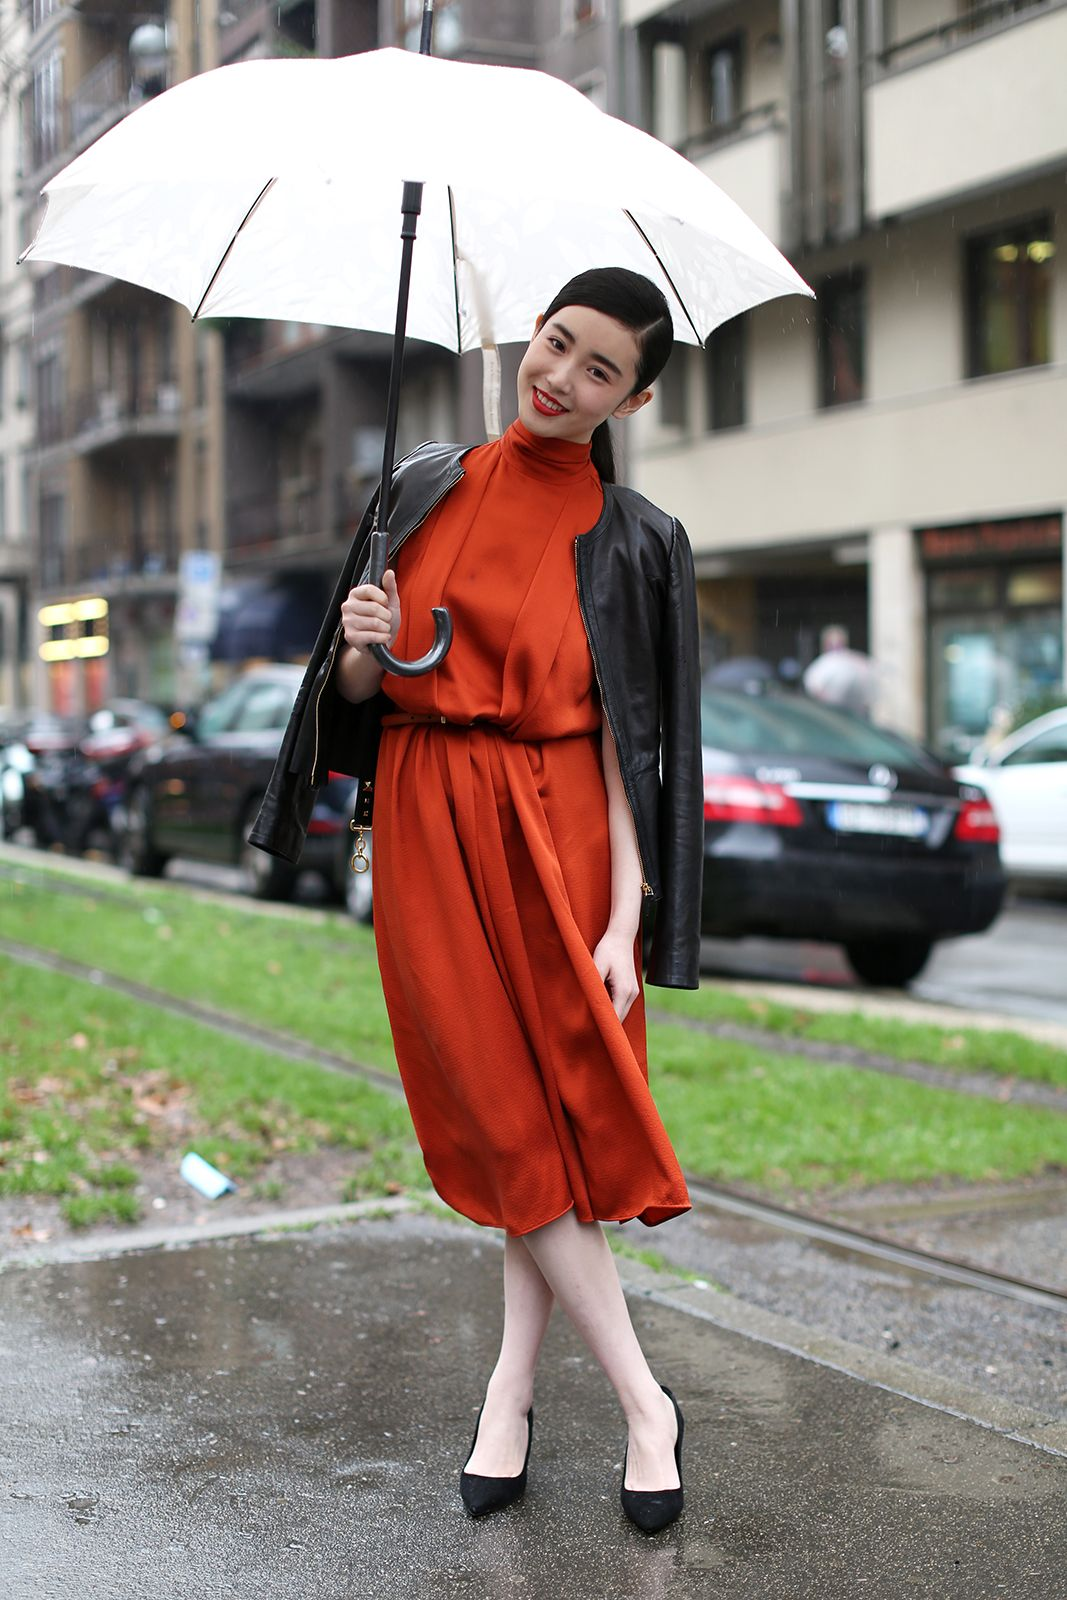 The European Guide To Flawless Style #refinery29  http://www.refinery29.com/milan-fashion-week#slide10  Note to self: Buy an all-white umbrella. How striking does this one look?